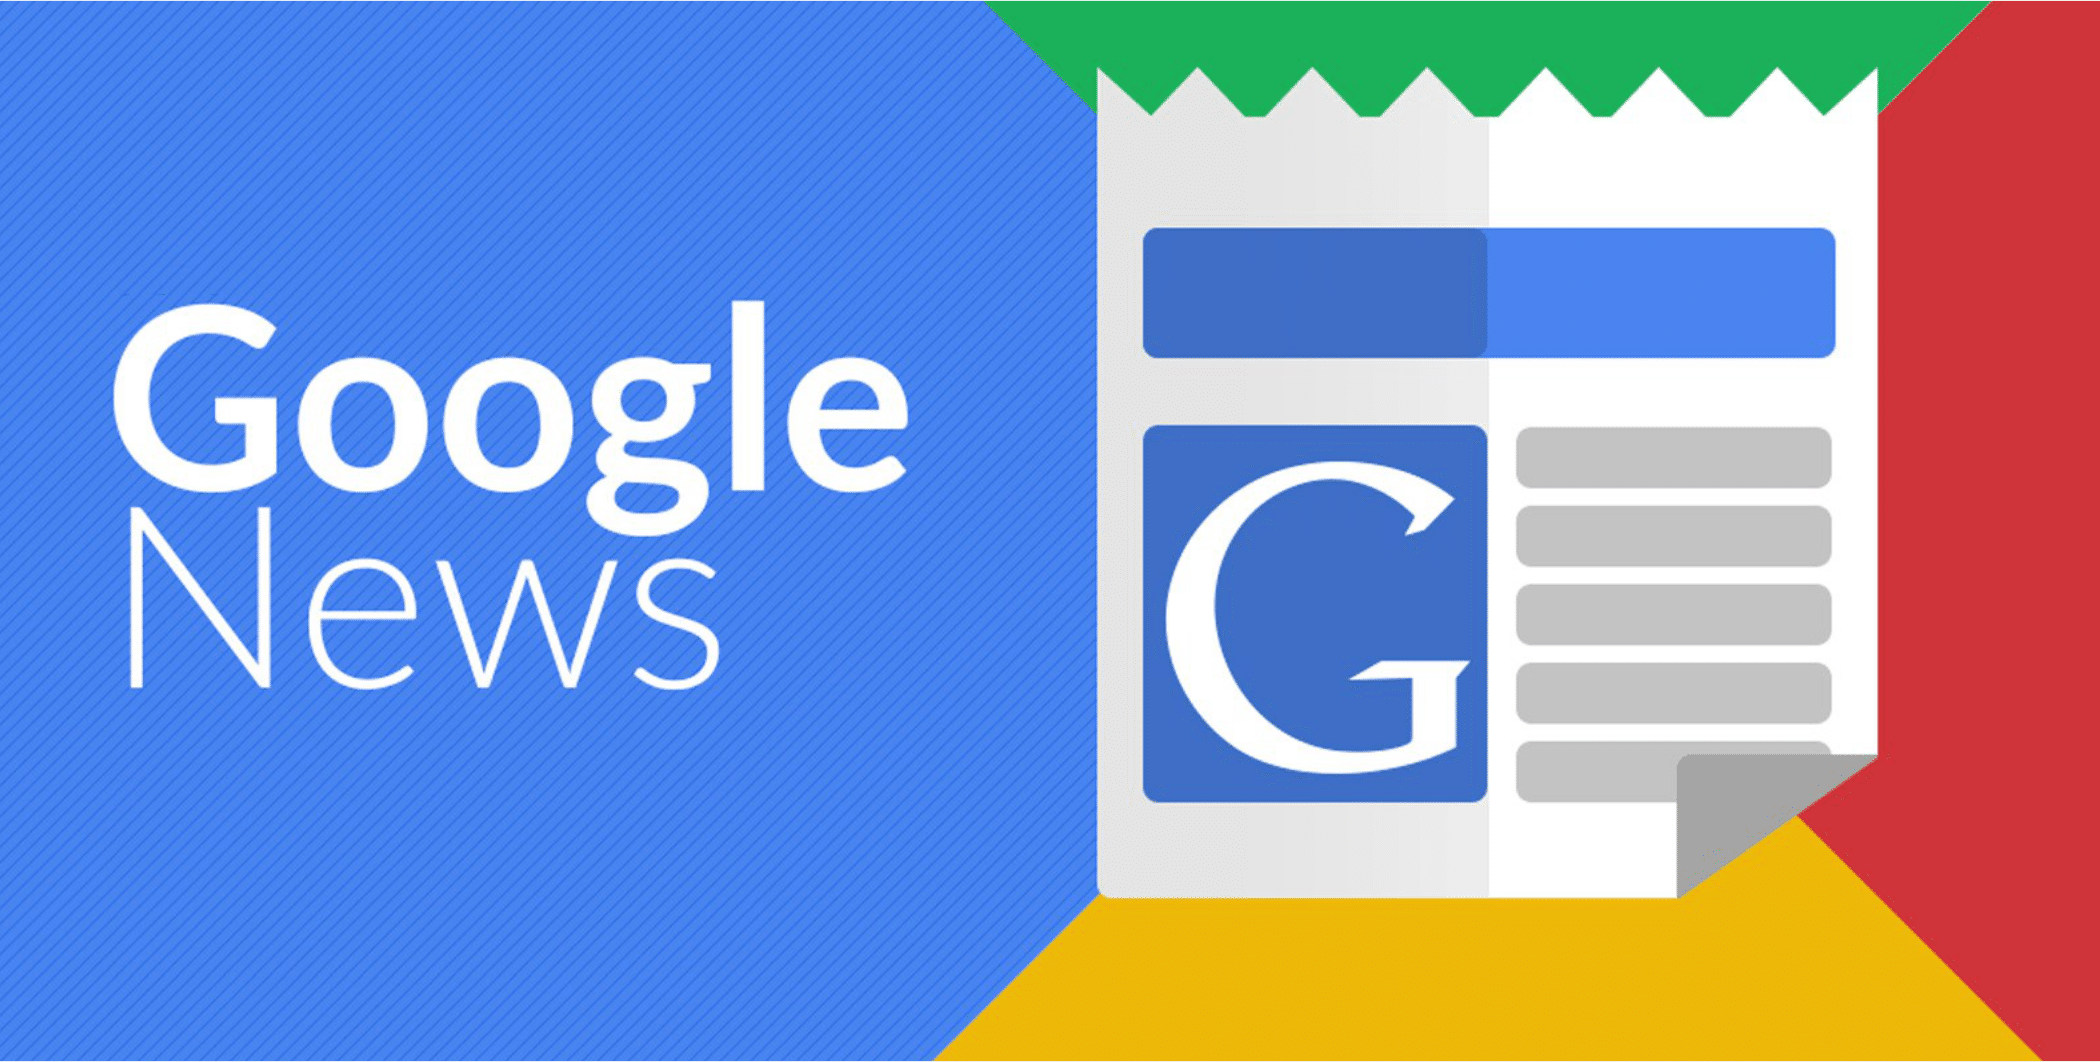 Google News Content Guidelines